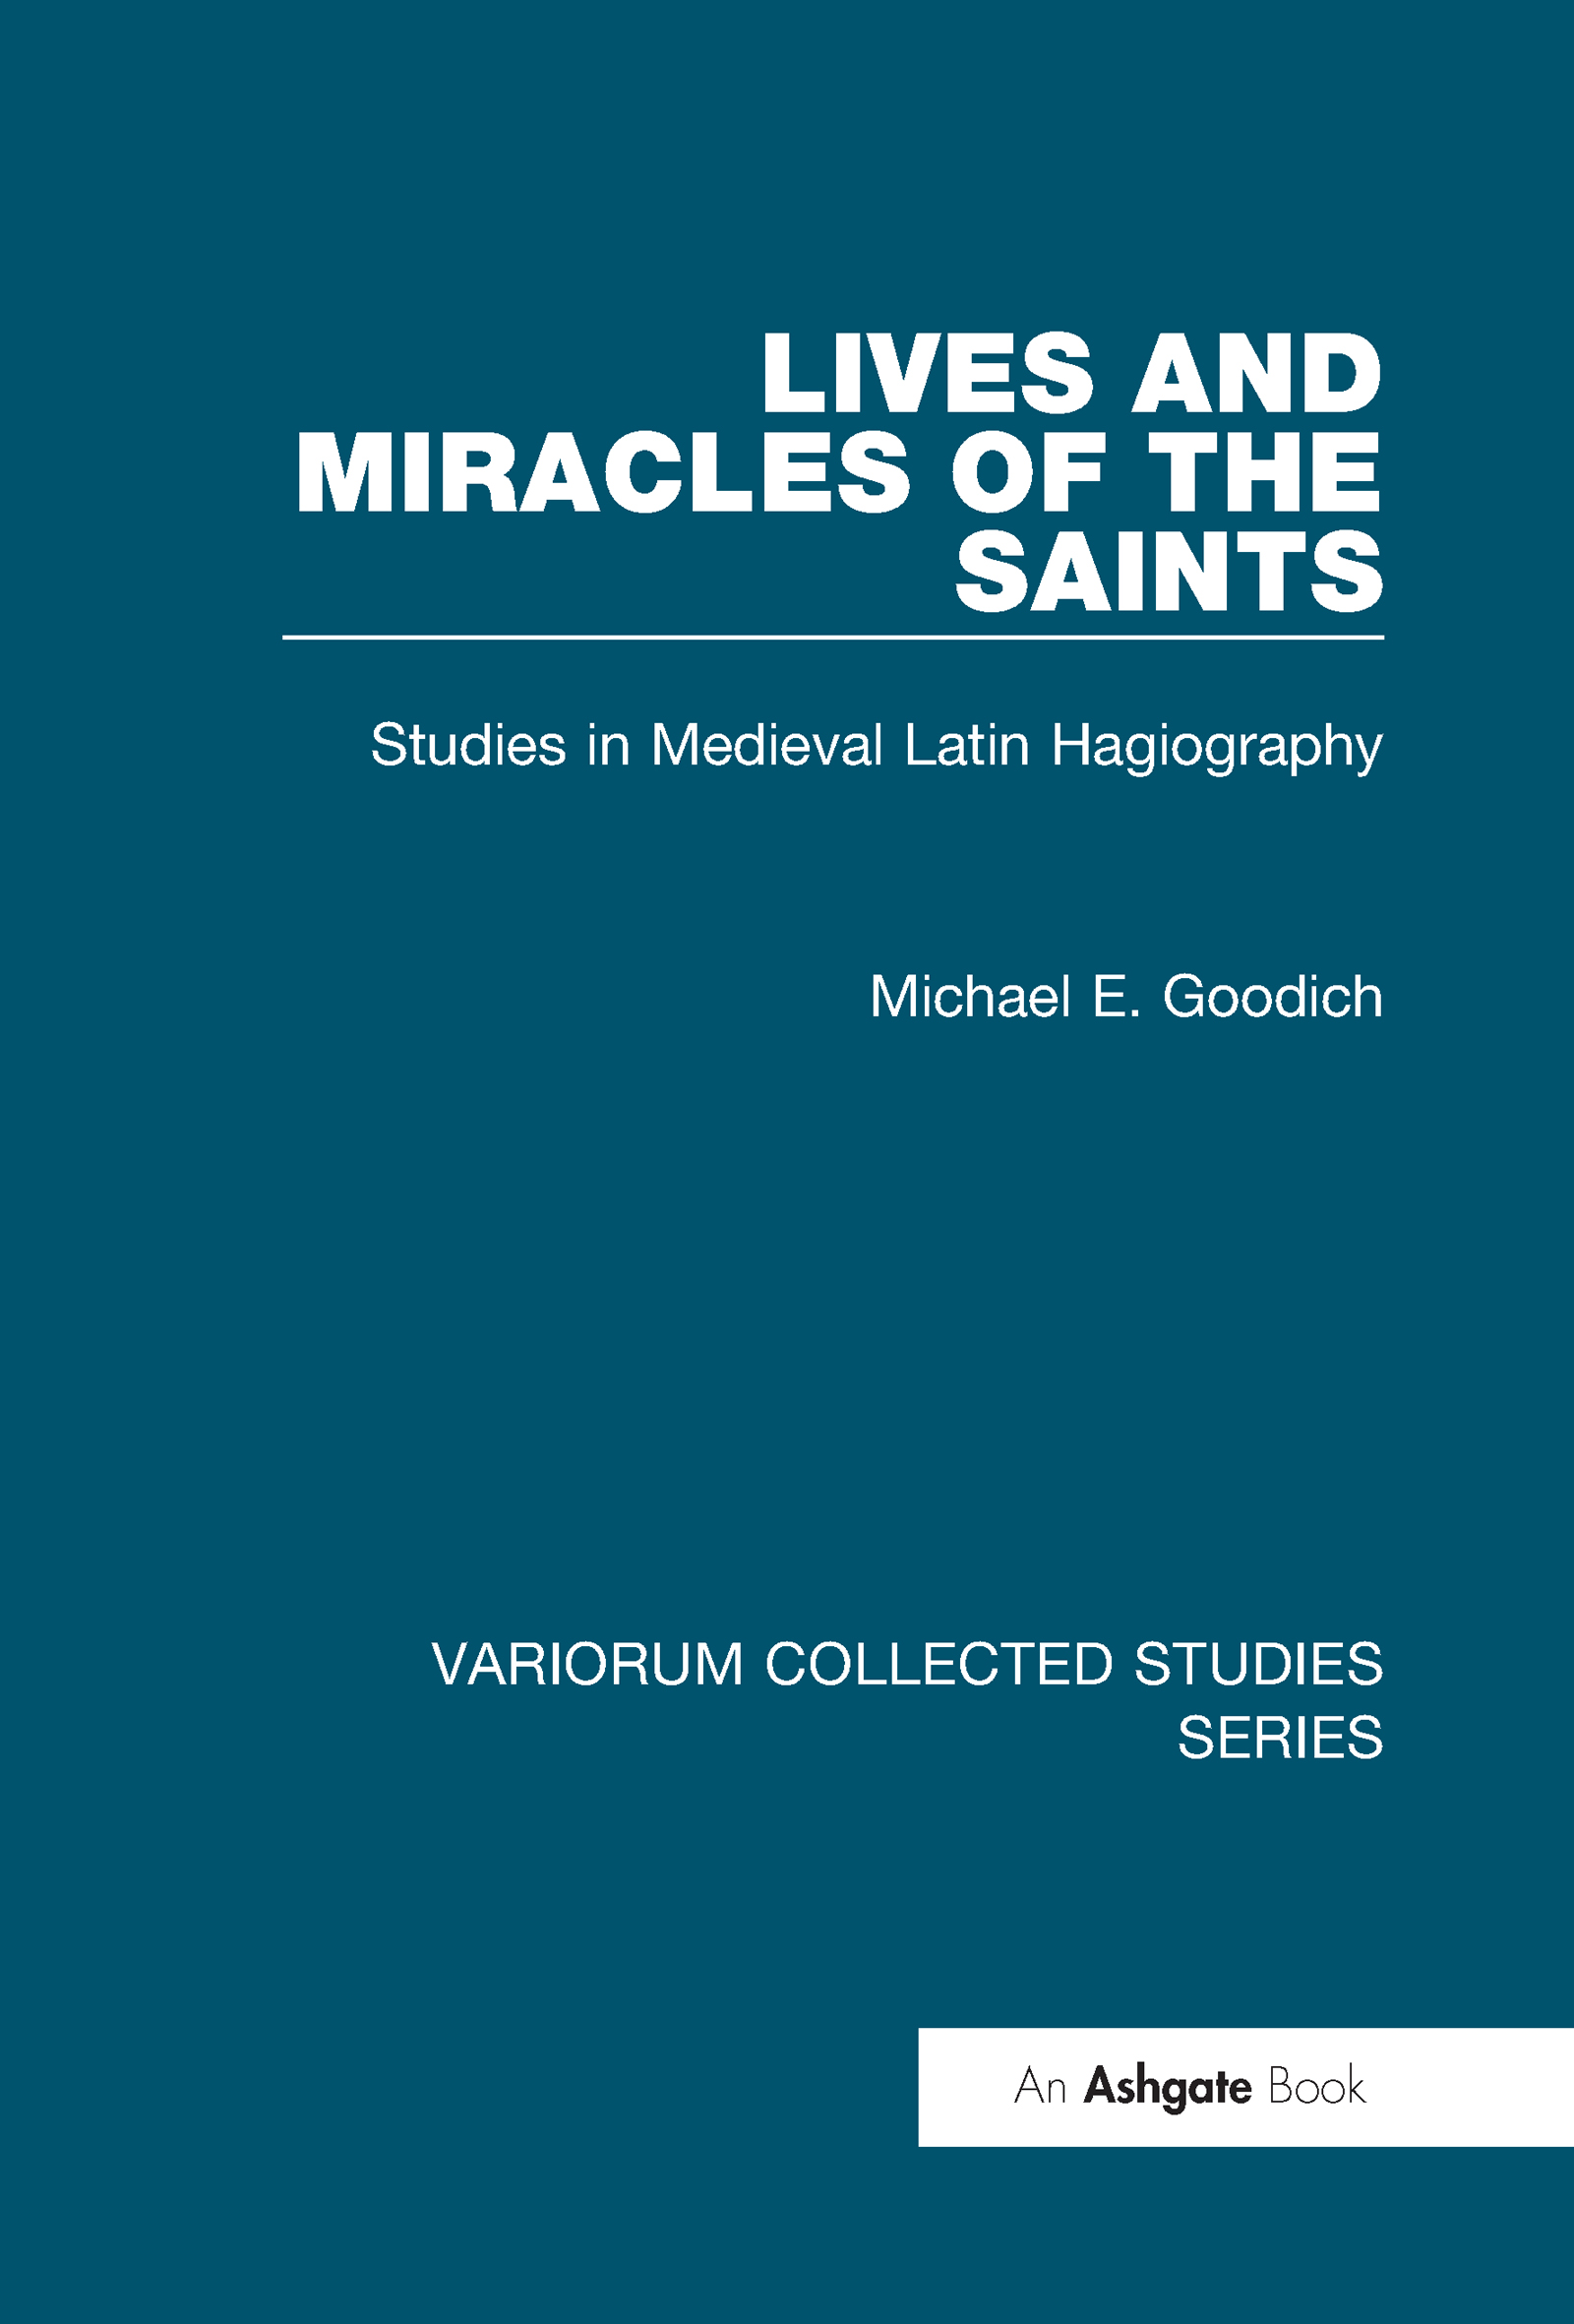 Lives and Miracles of the Saints